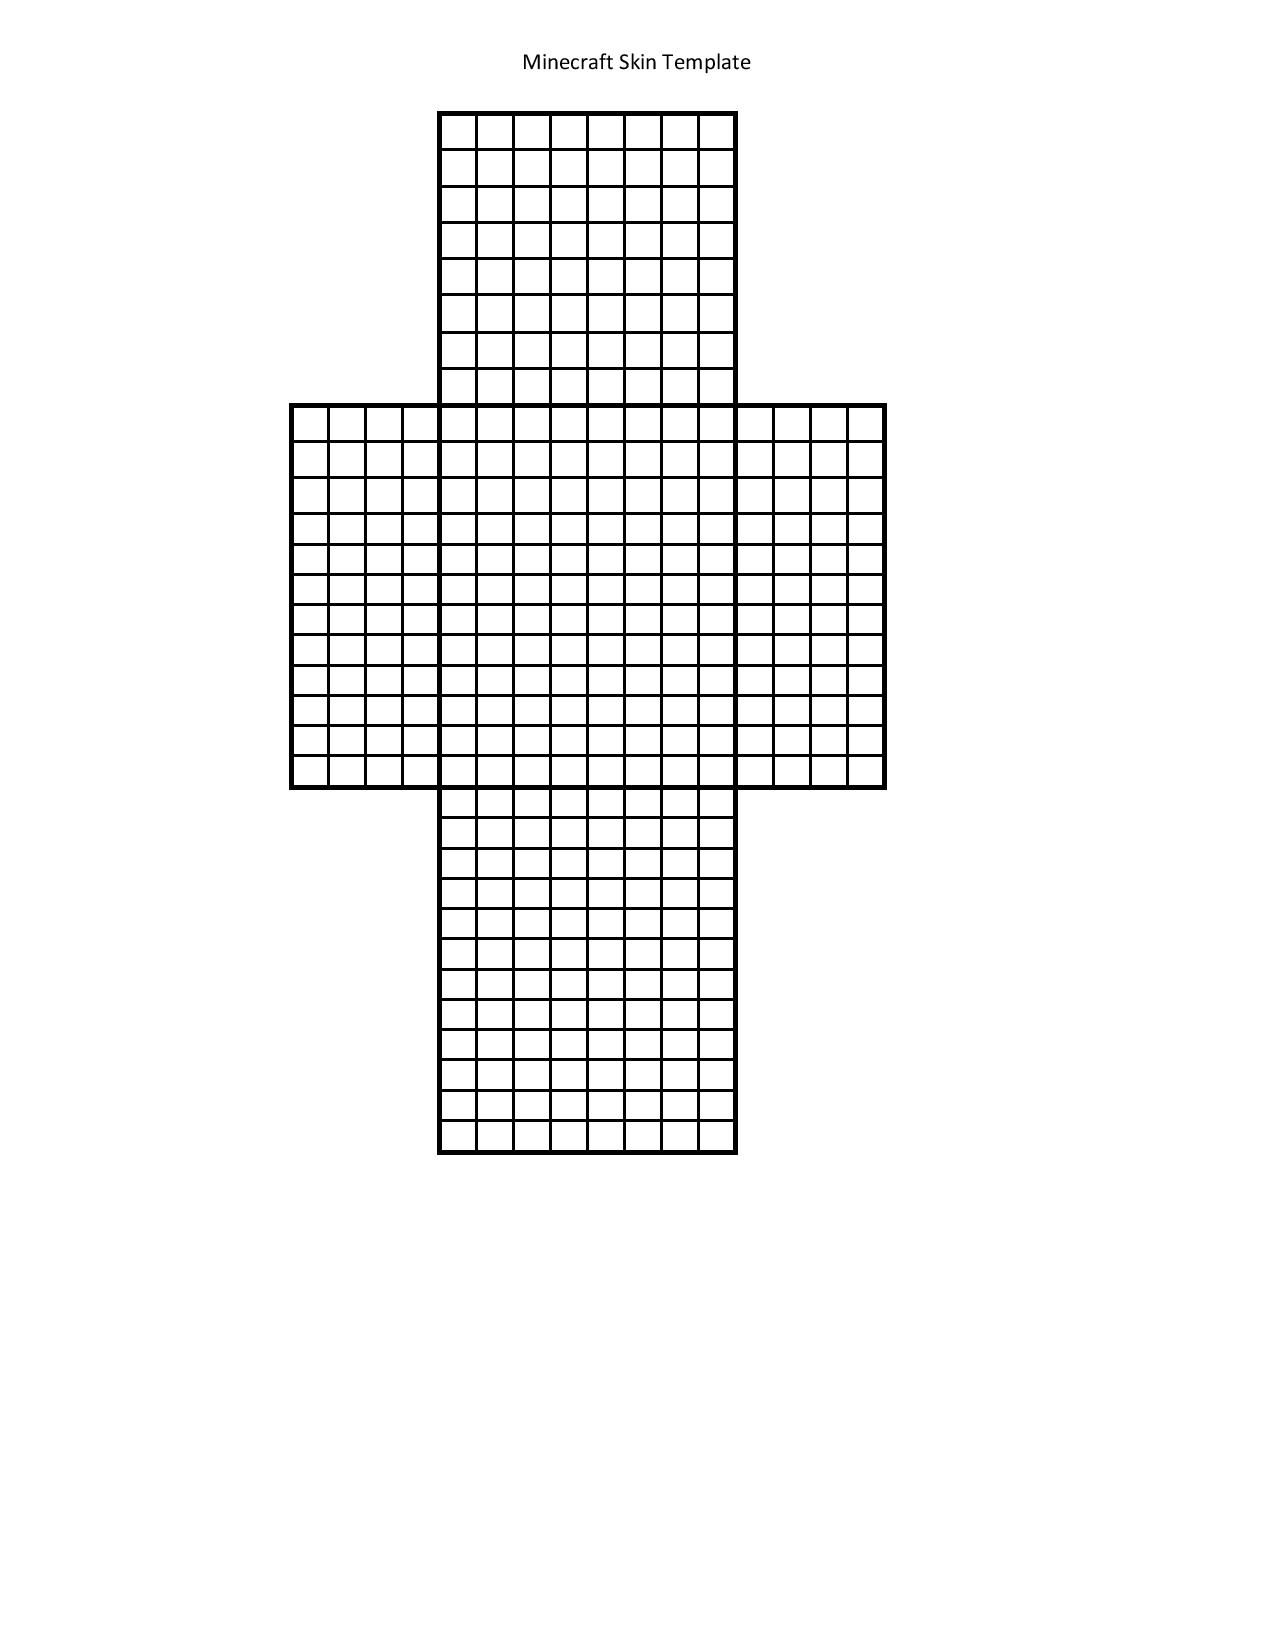 Printable Template For Minecraft Skin Creation Use Markers Or - Skins para minecraft online